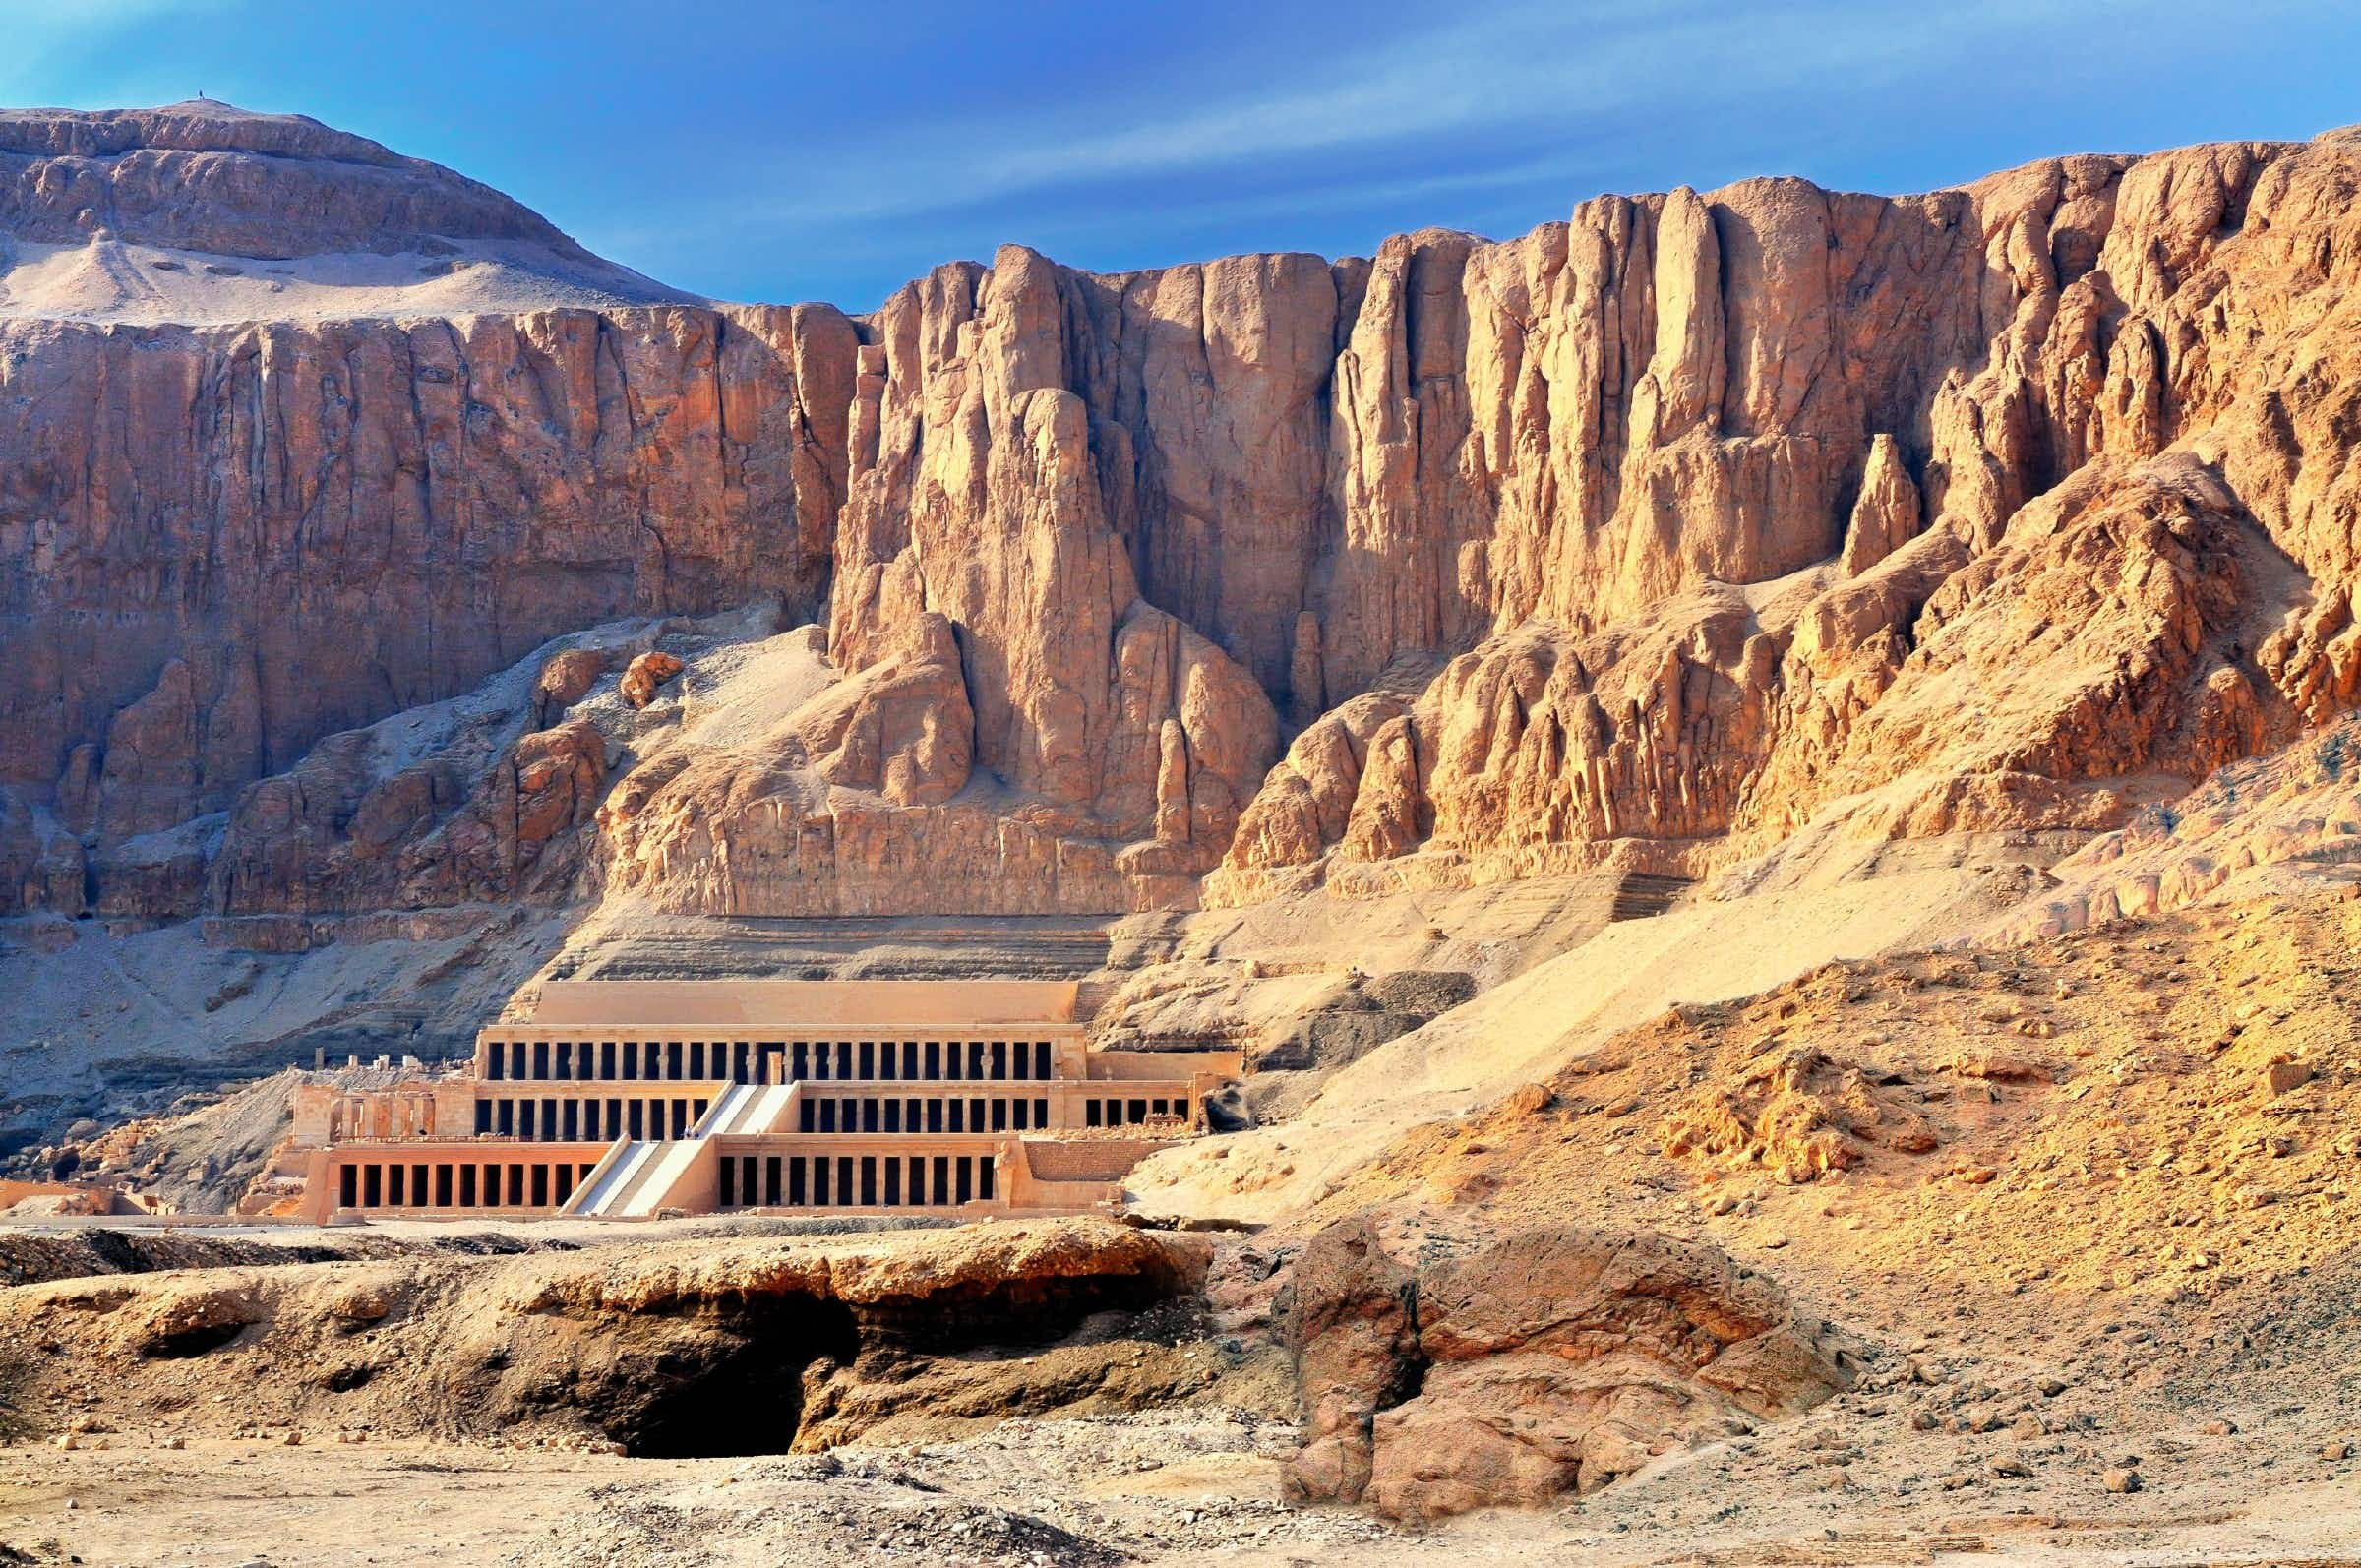 EgyptAir launches new flights between Sharm El Sheikh and Luxor